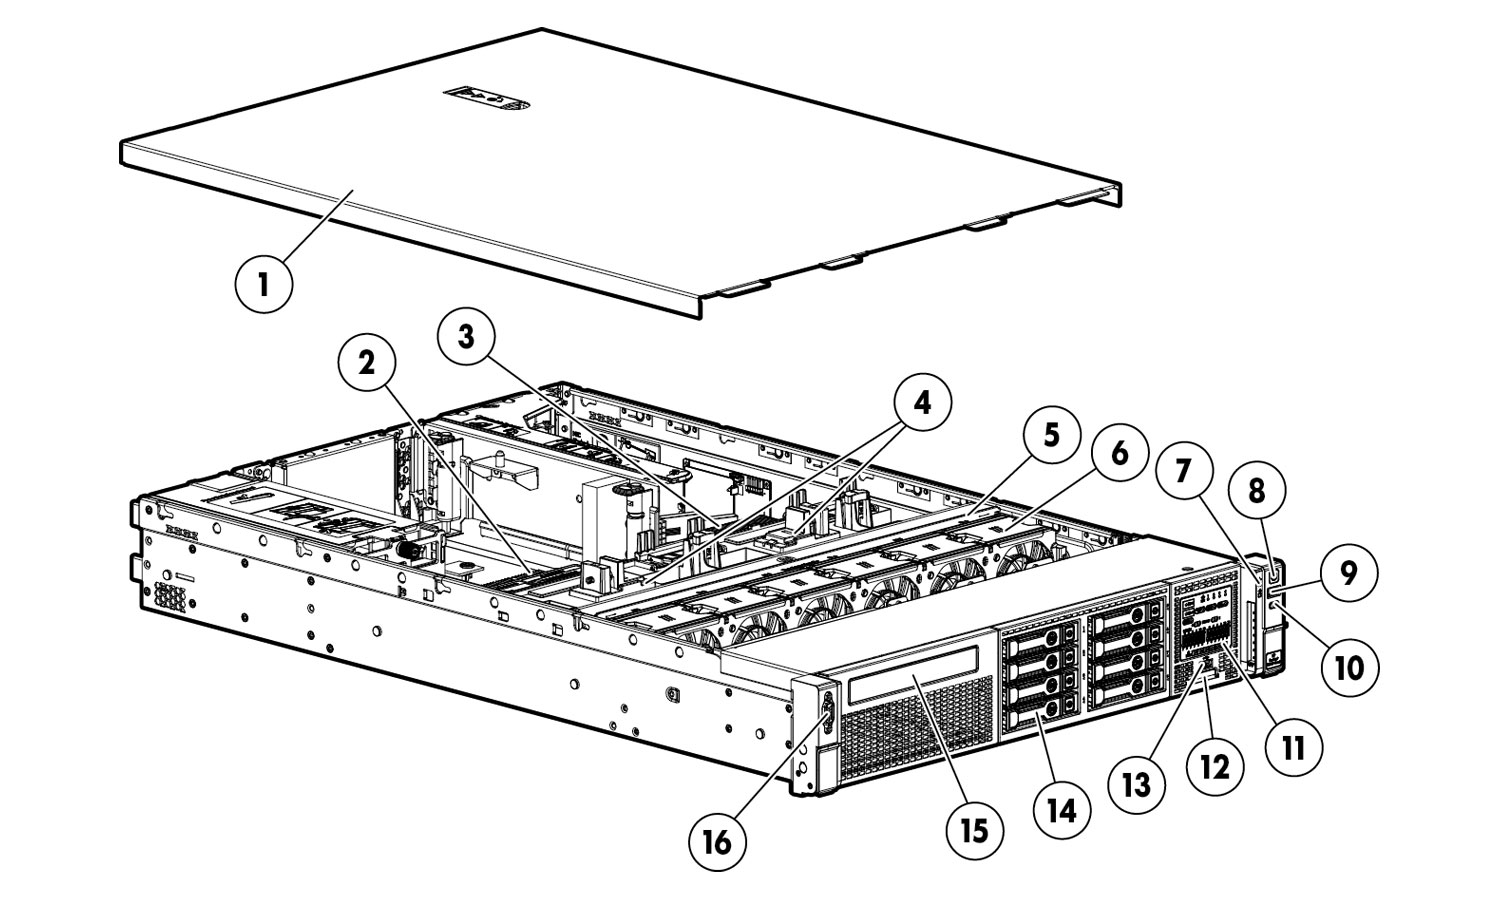 Ml150 g6 service and maintenance guide